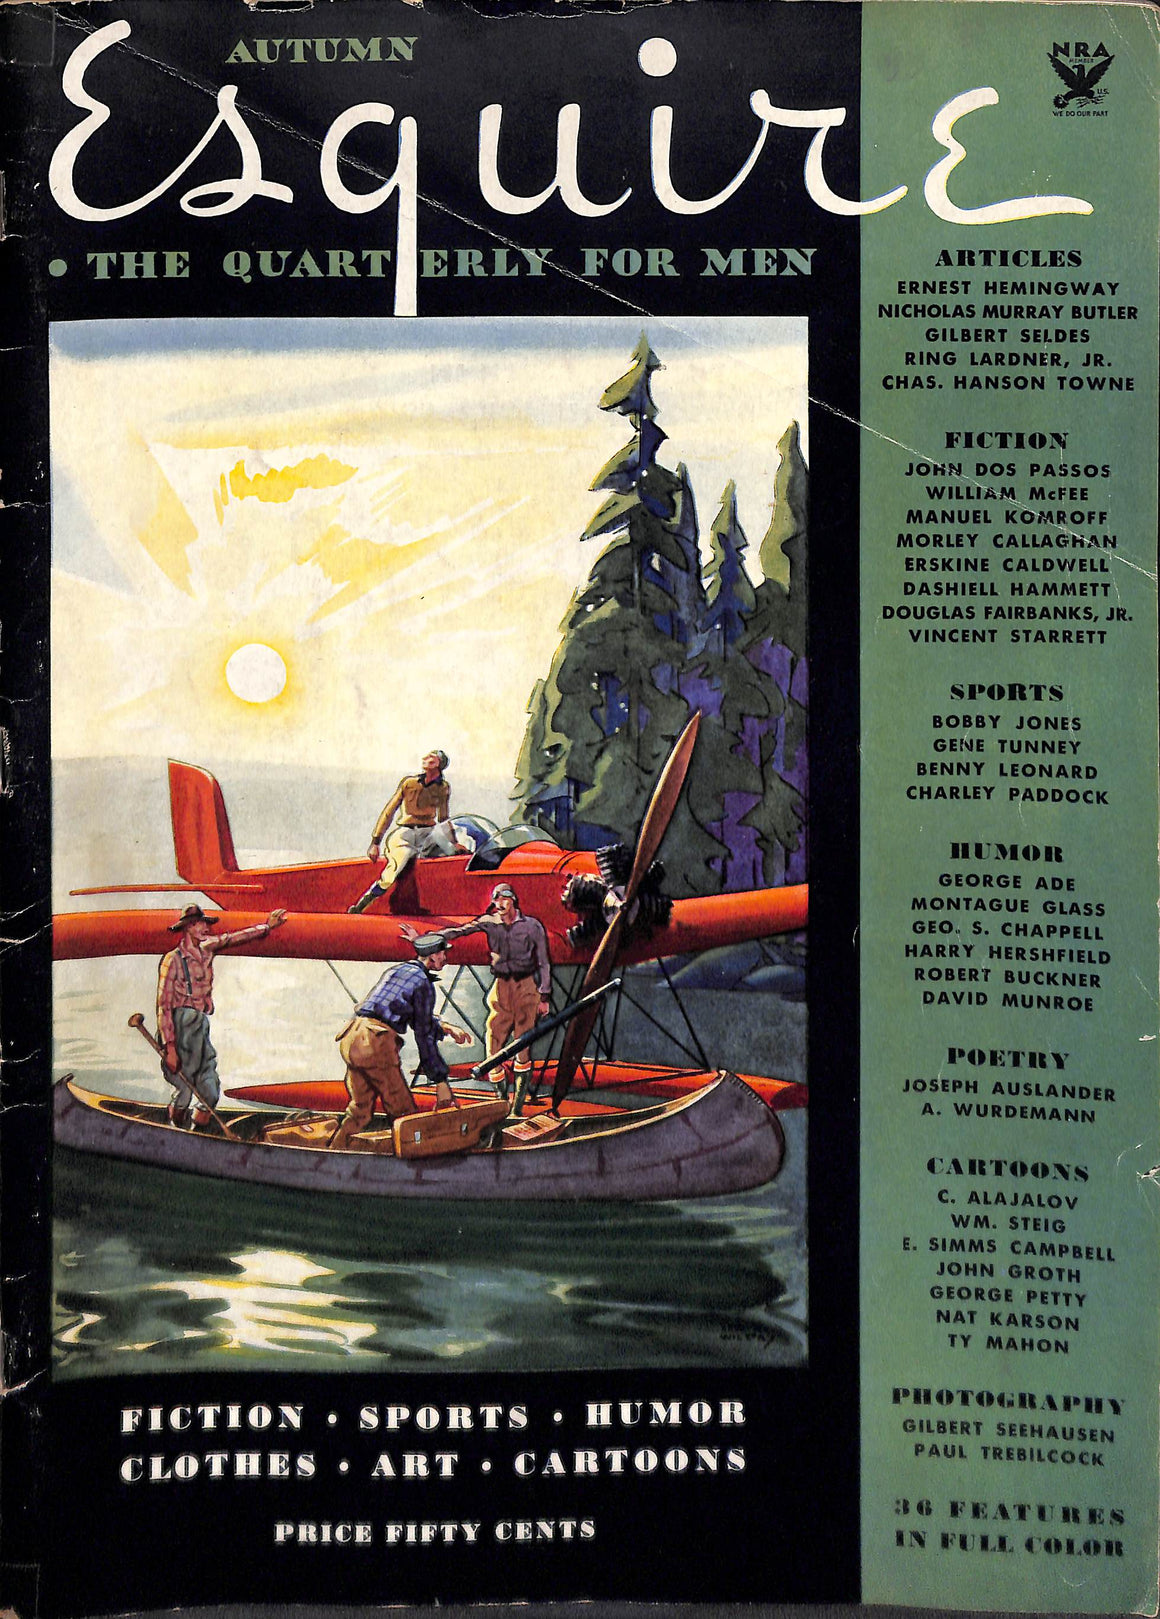 Esquire Autumn 1933 Inaugural Issue